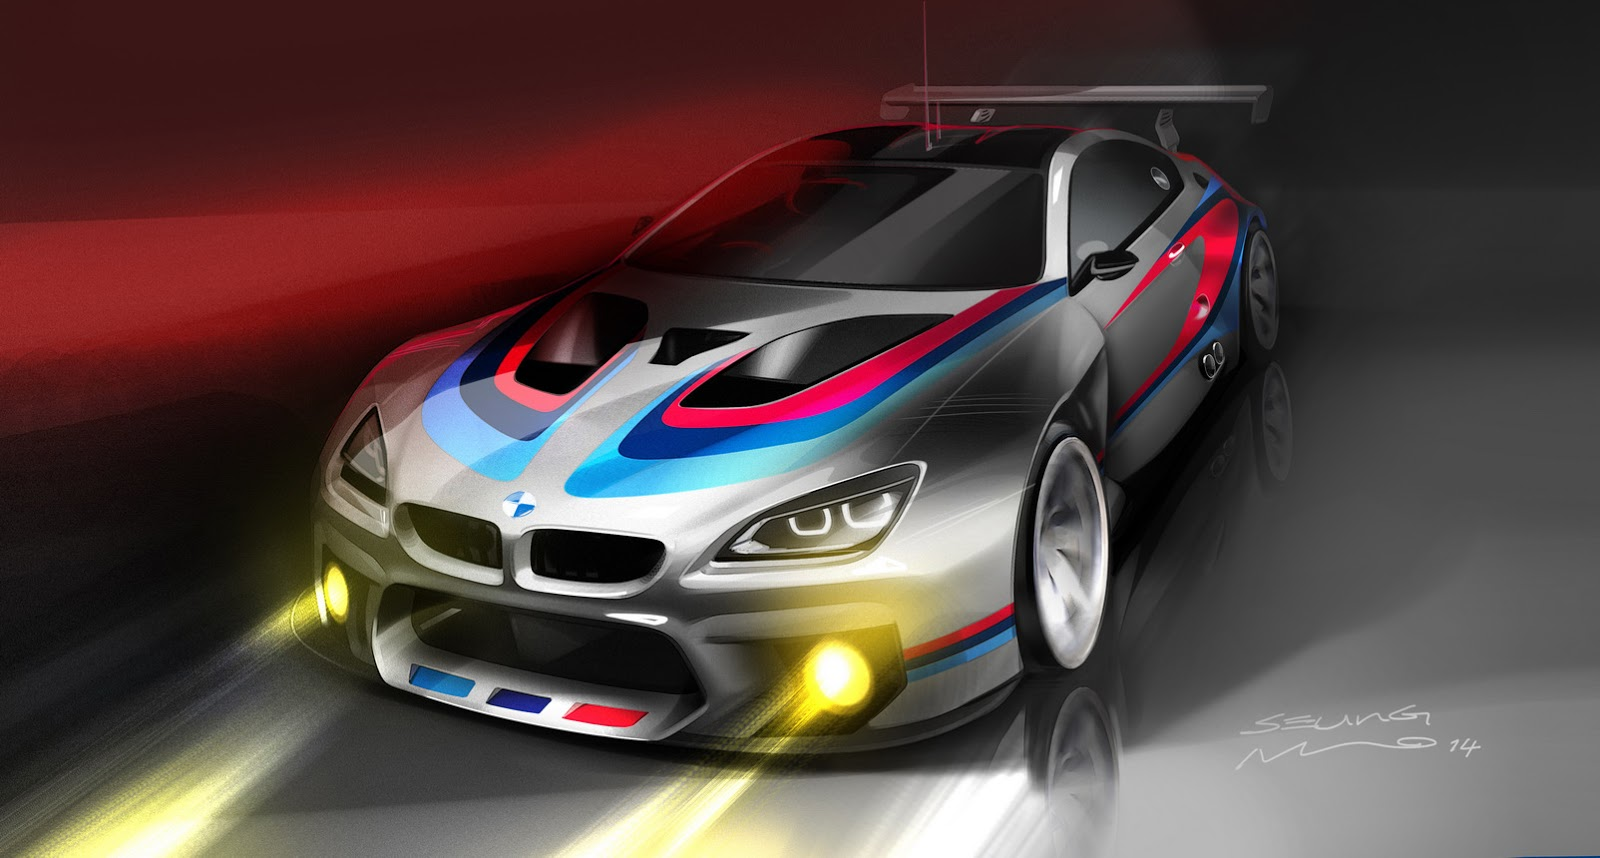 Upcoming Bmw M6 Coupe Gt3 Teased Gtspirit